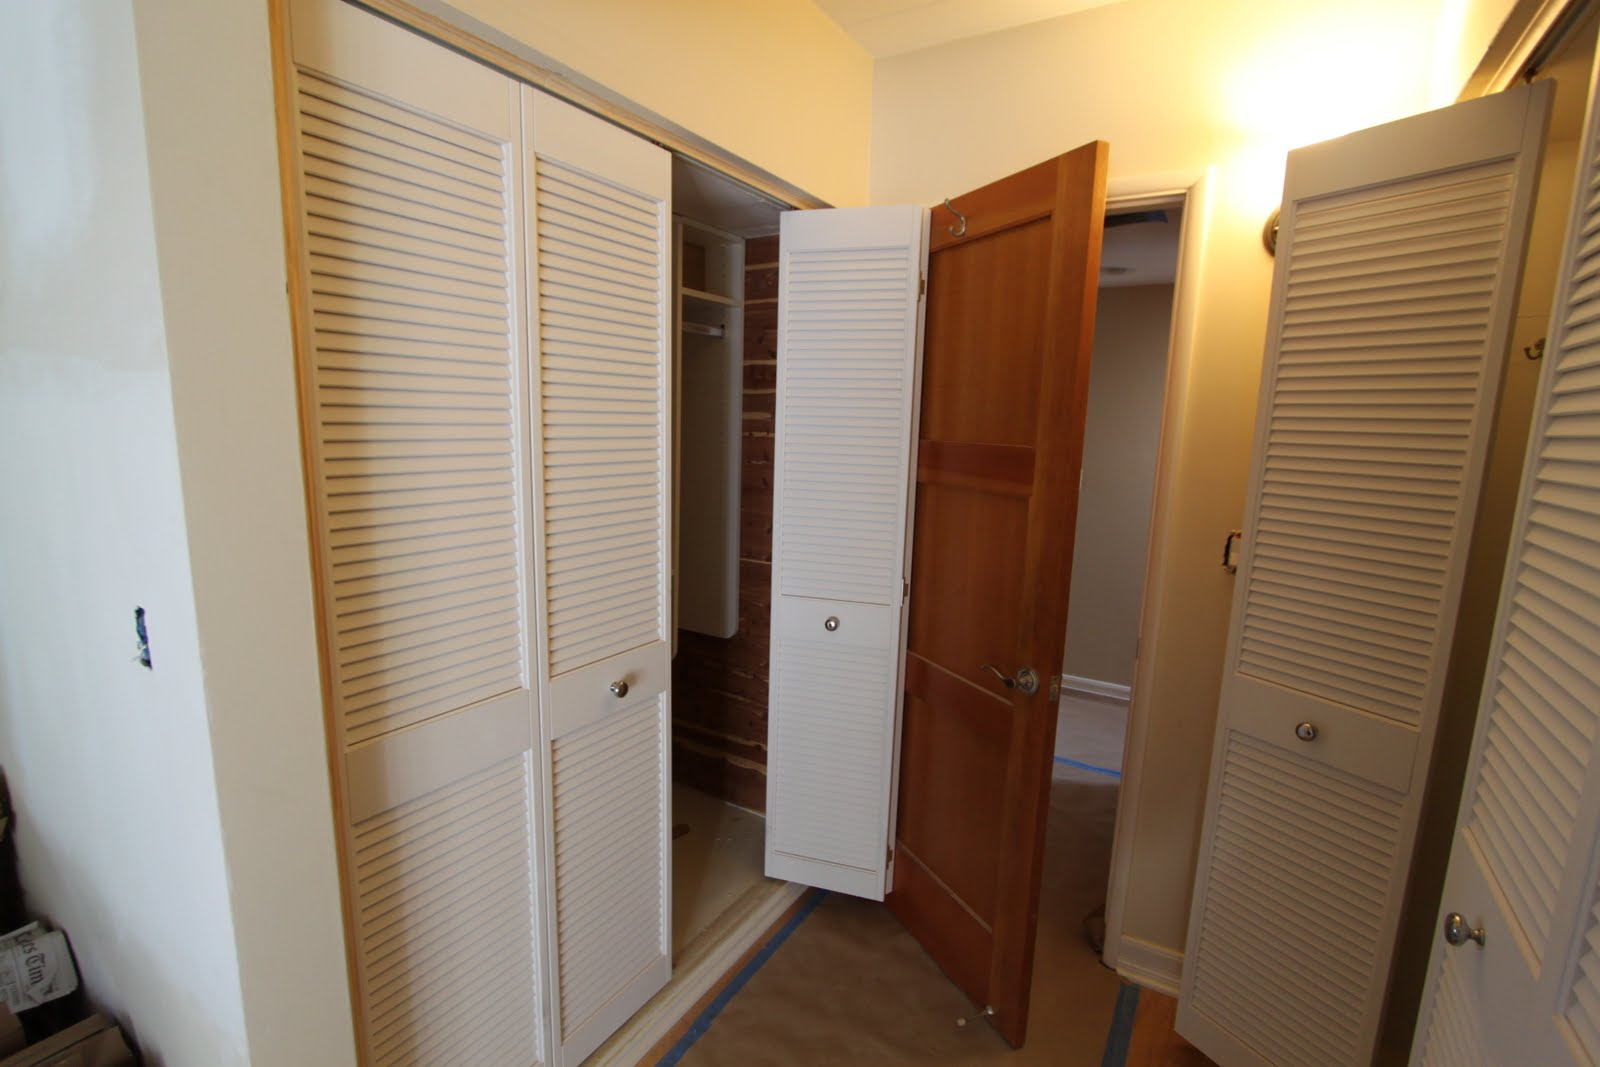 Mid century modern closet doors - All About Louver Closet Doors Mid Century Modern Remodel